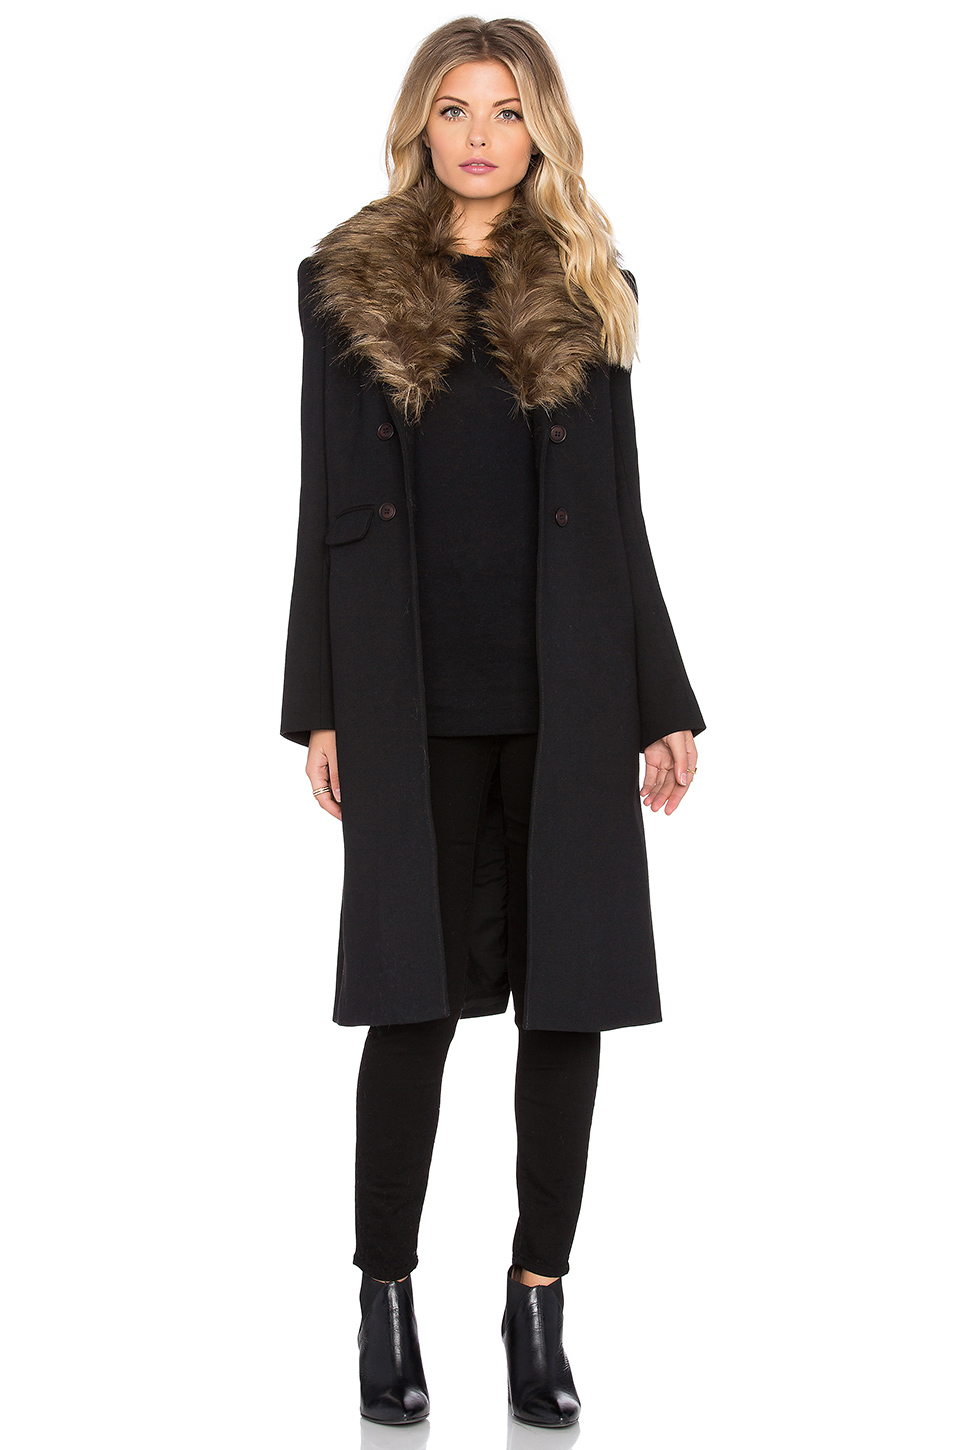 Smythe Faux Fur Collar Tailored Coat in Black | Lyst